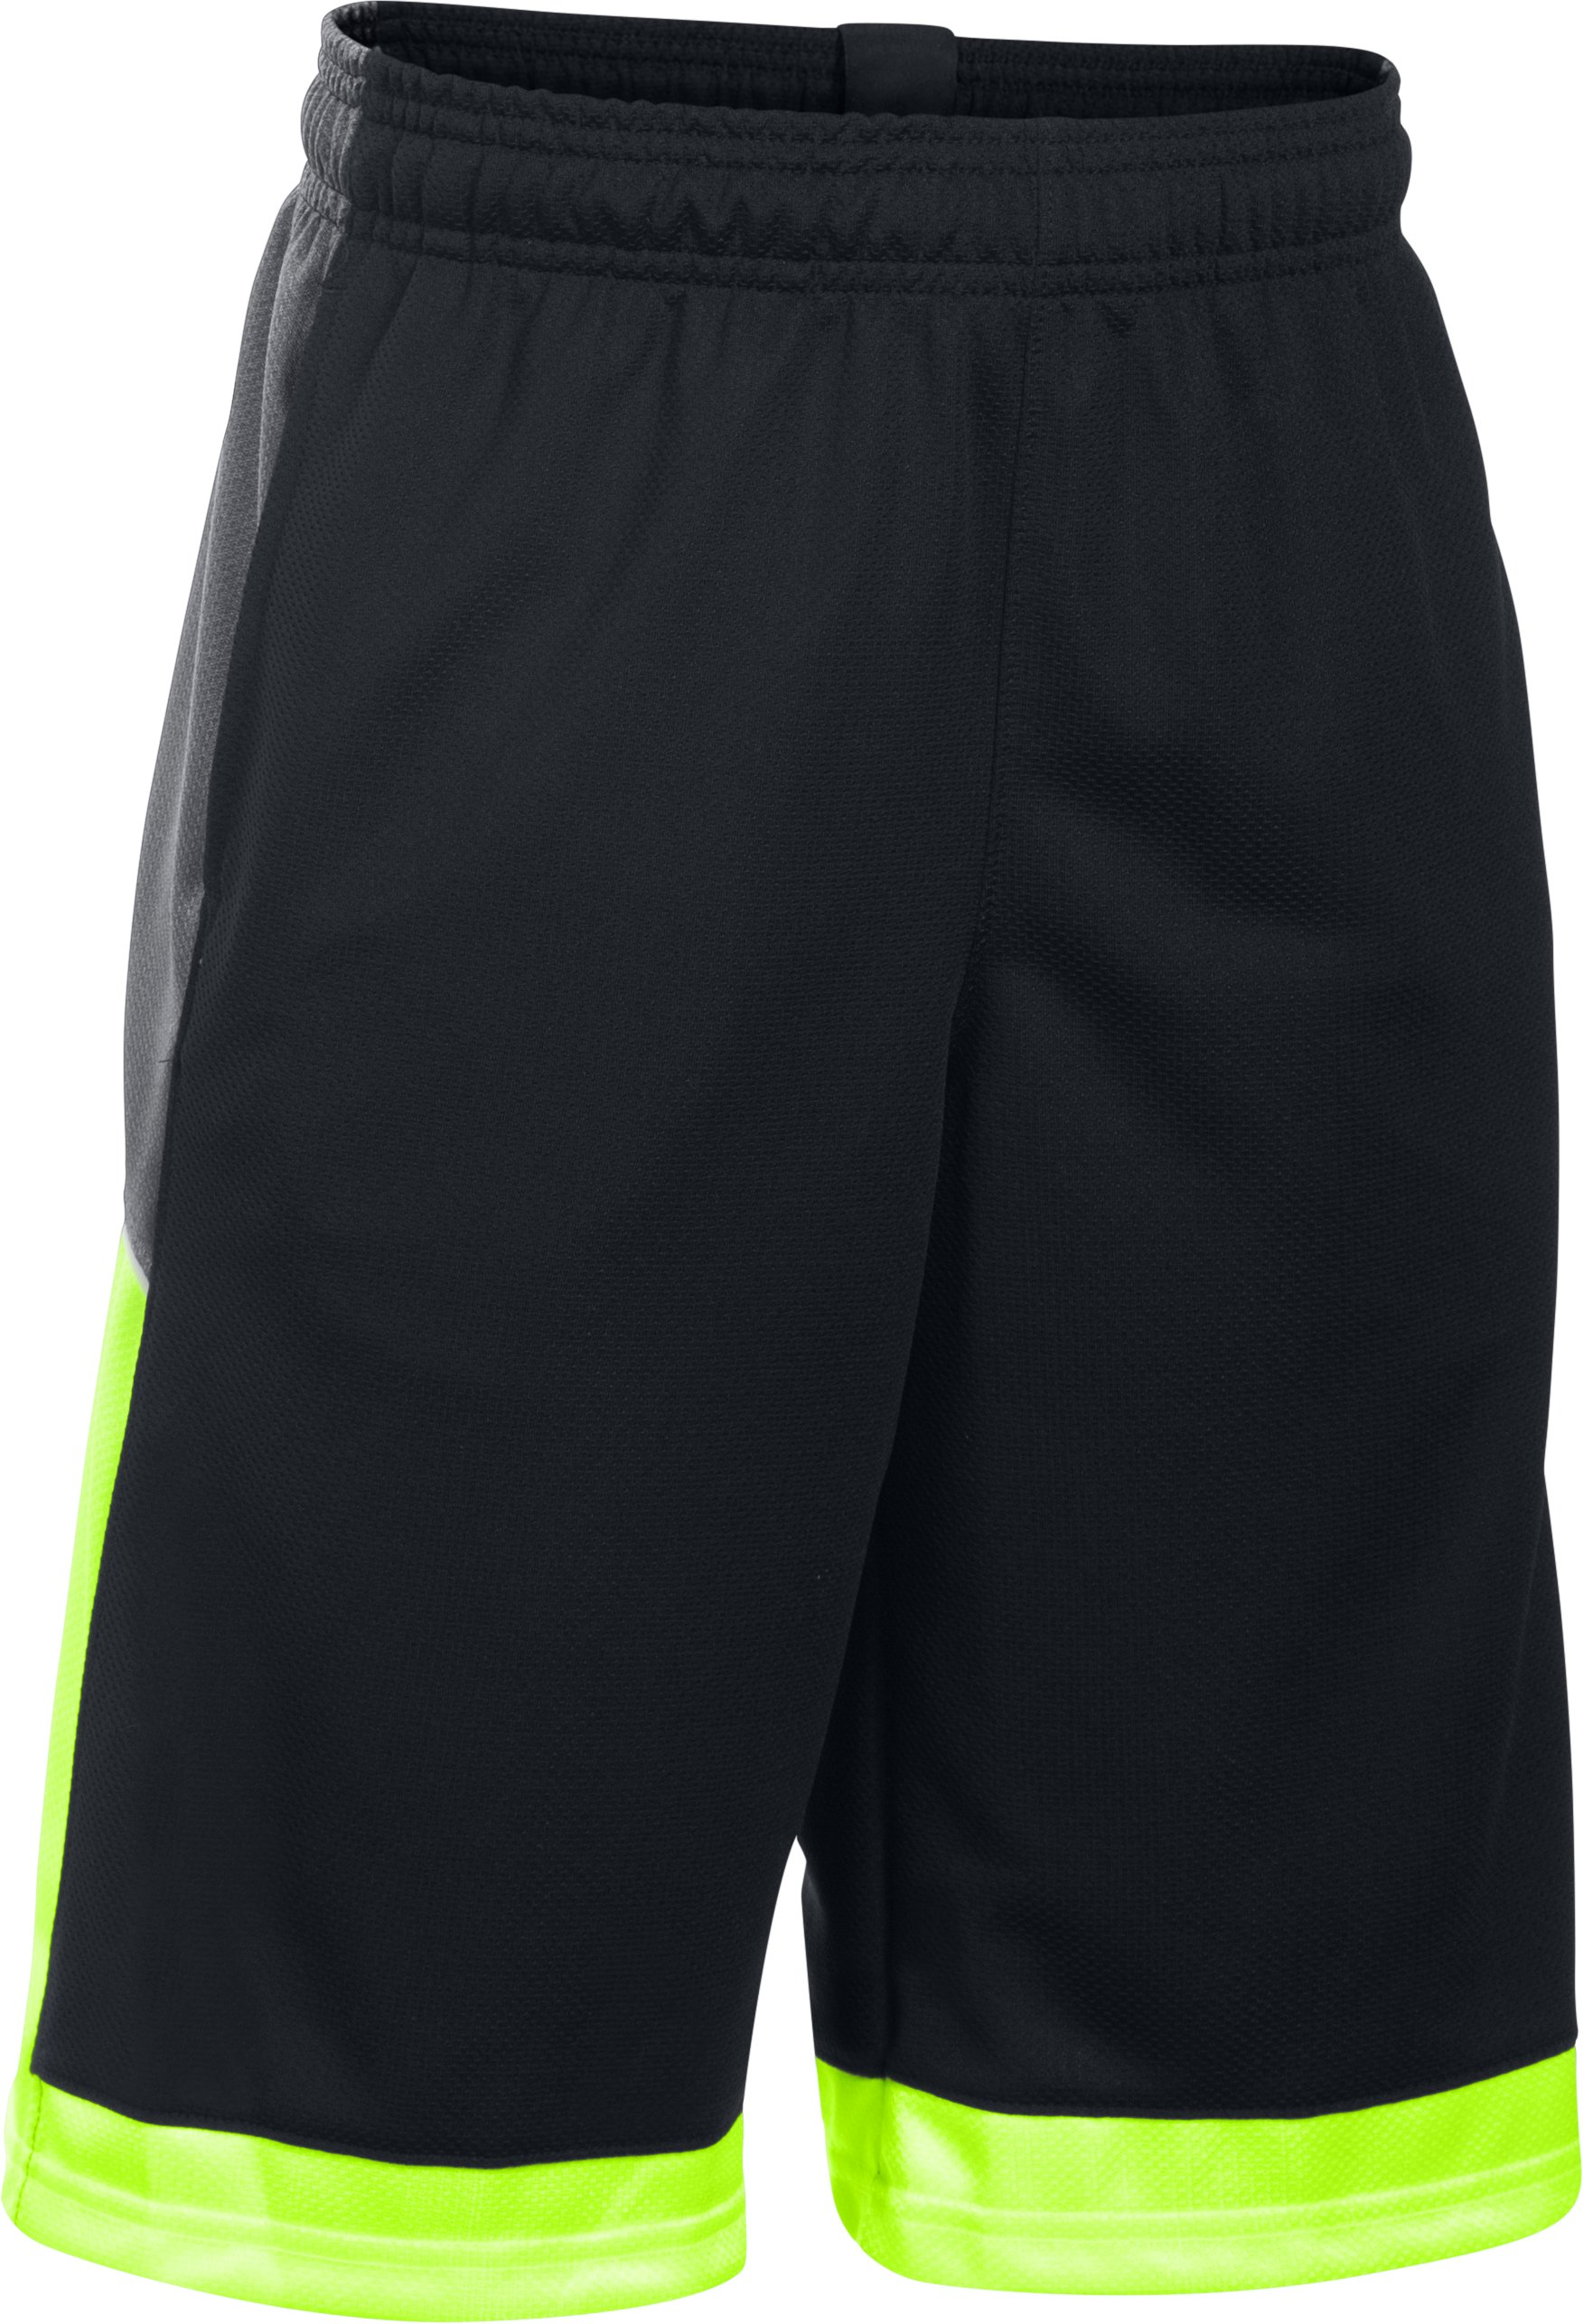 Boys' UA Baseline Basketball Shorts, Black